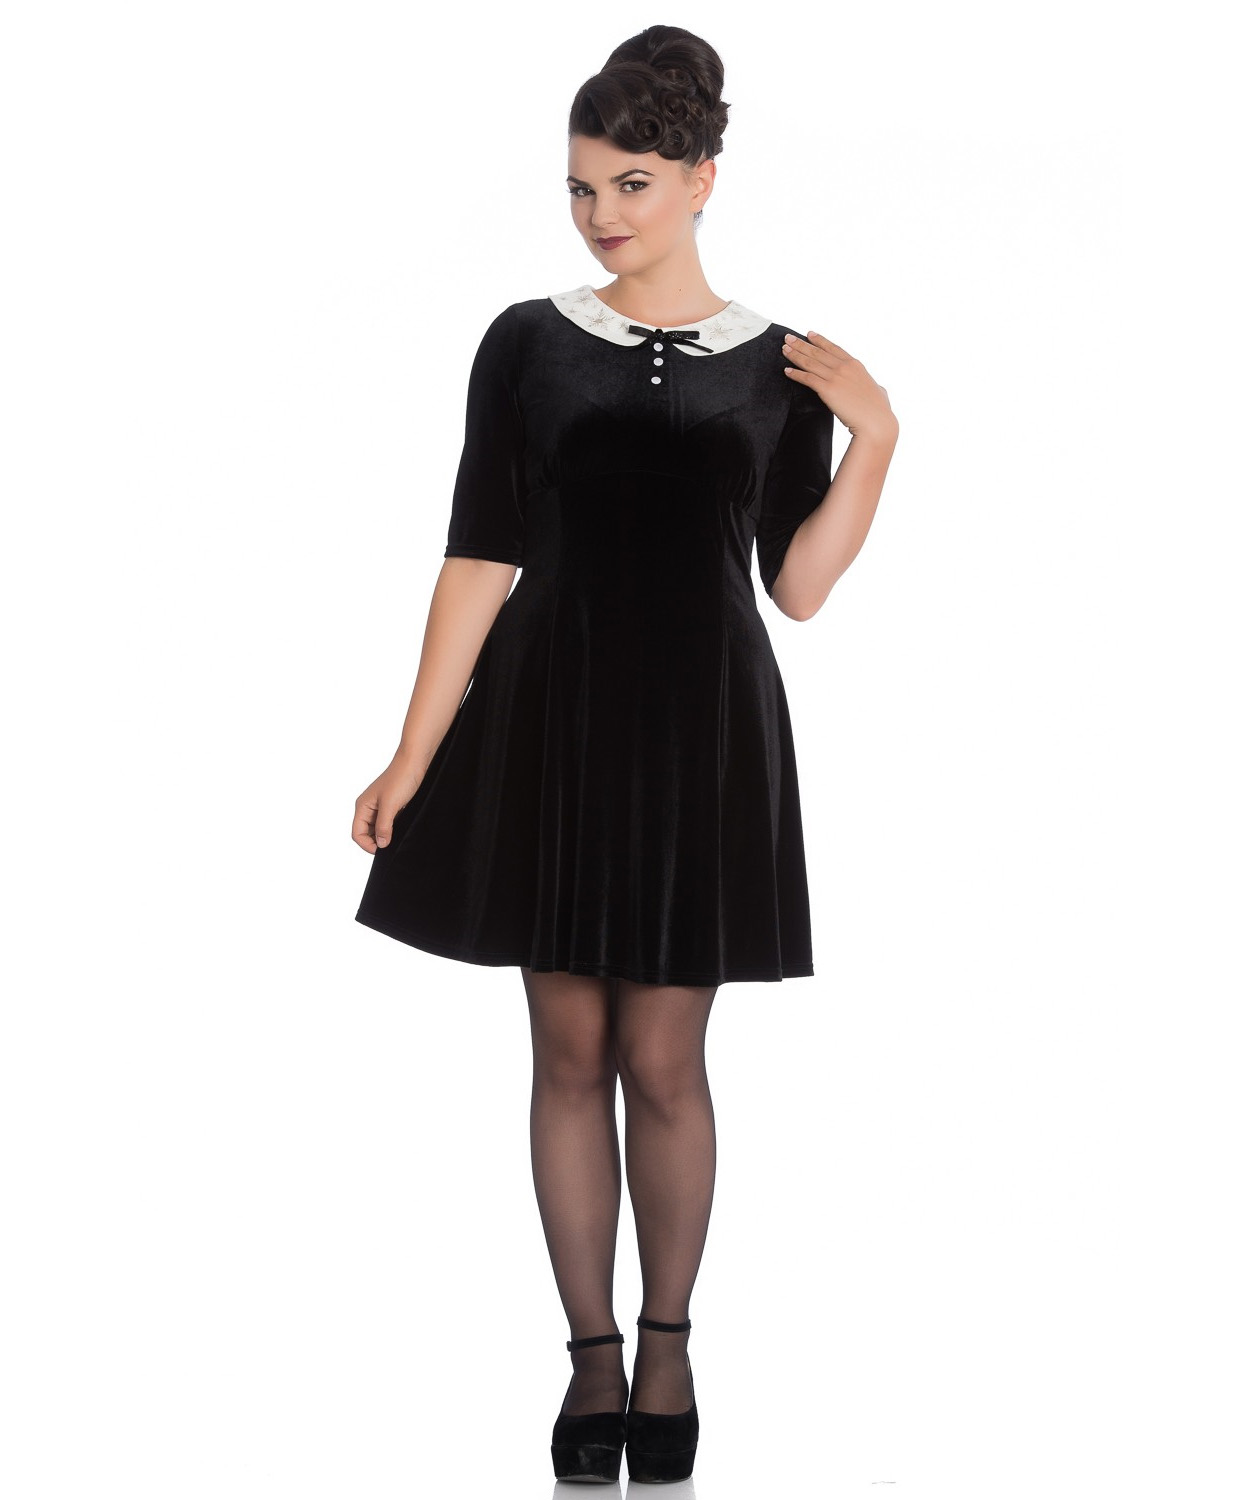 Hell-Bunny-Mini-Skater-Dress-Festive-Christmas-SNOWY-Black-Snowflakes-All-Sizes thumbnail 3